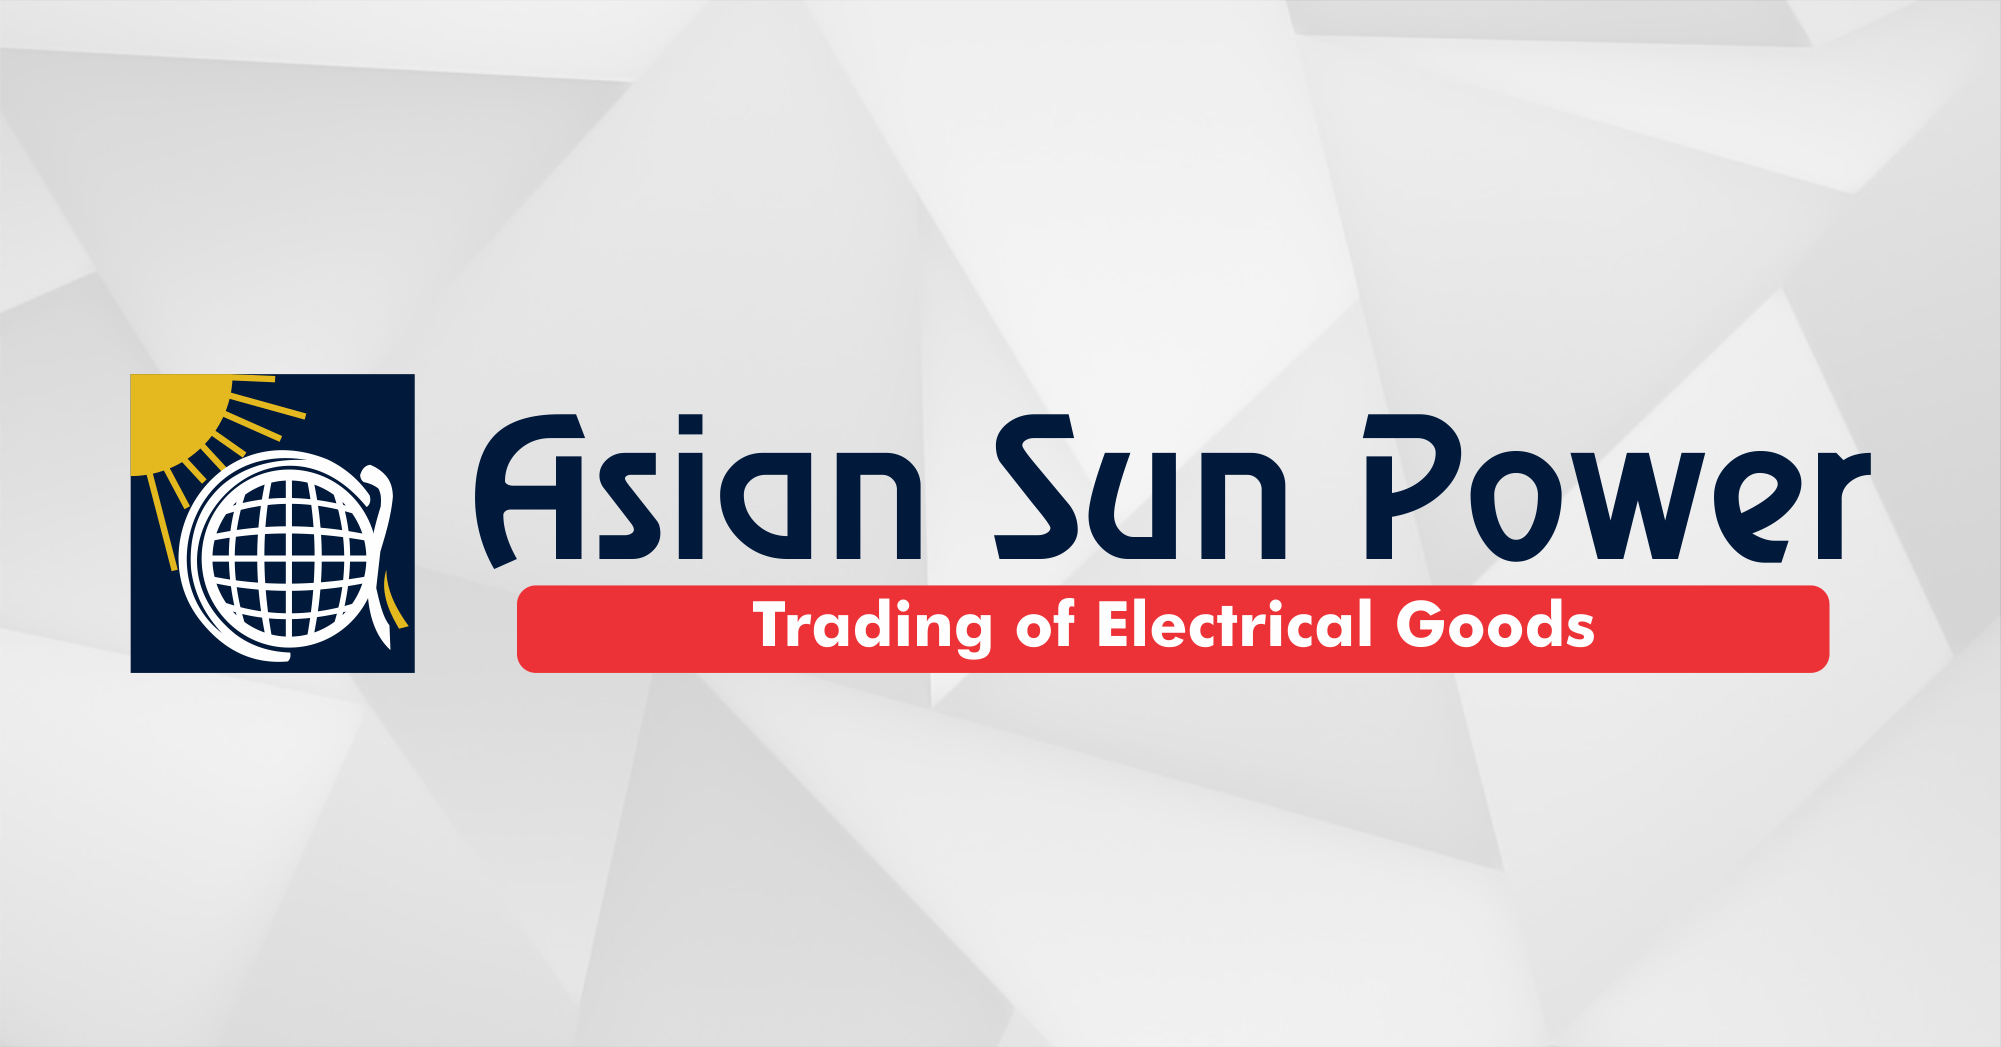 asian-sun-power-logo-1 Shree